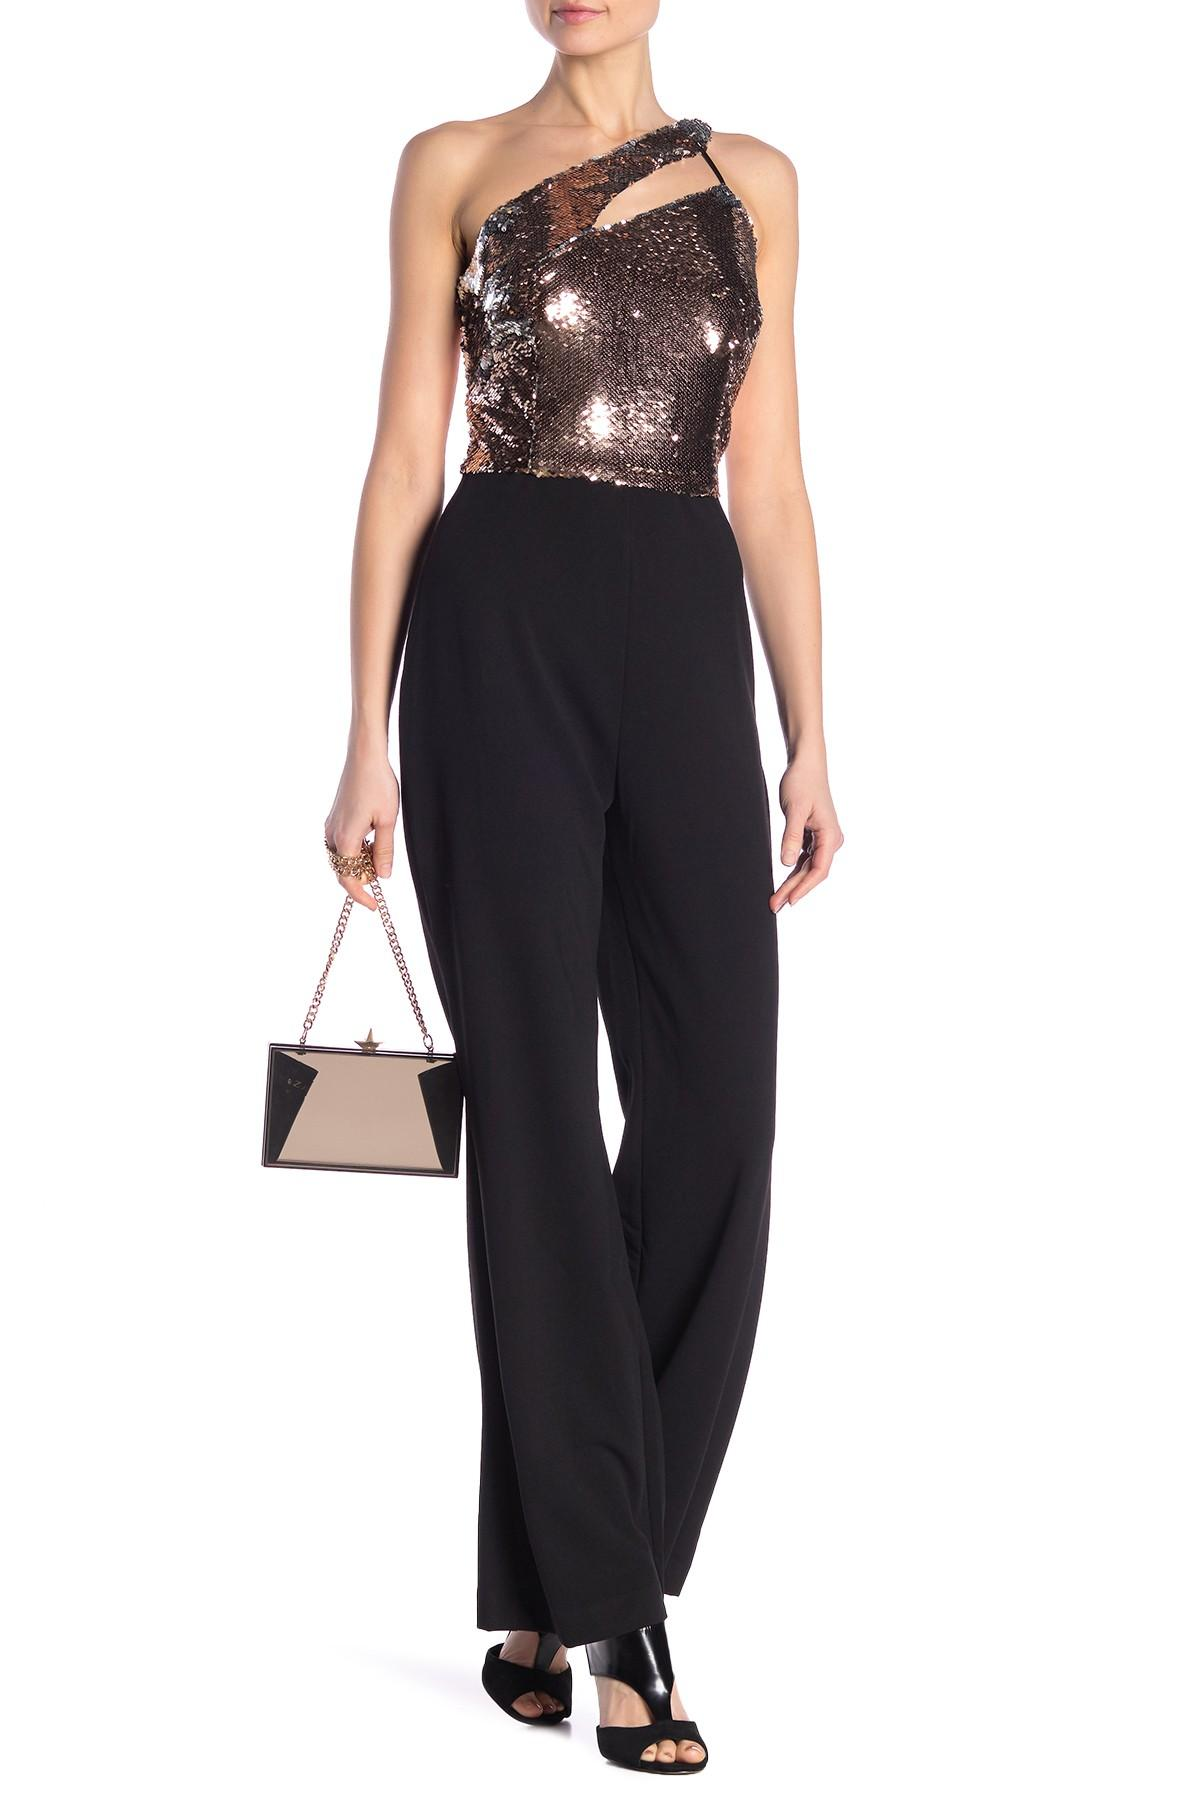 a9902ec8881f Lyst - Alexia Admor One Shoulder Sequin Jumpsuit in Black - Save 28%